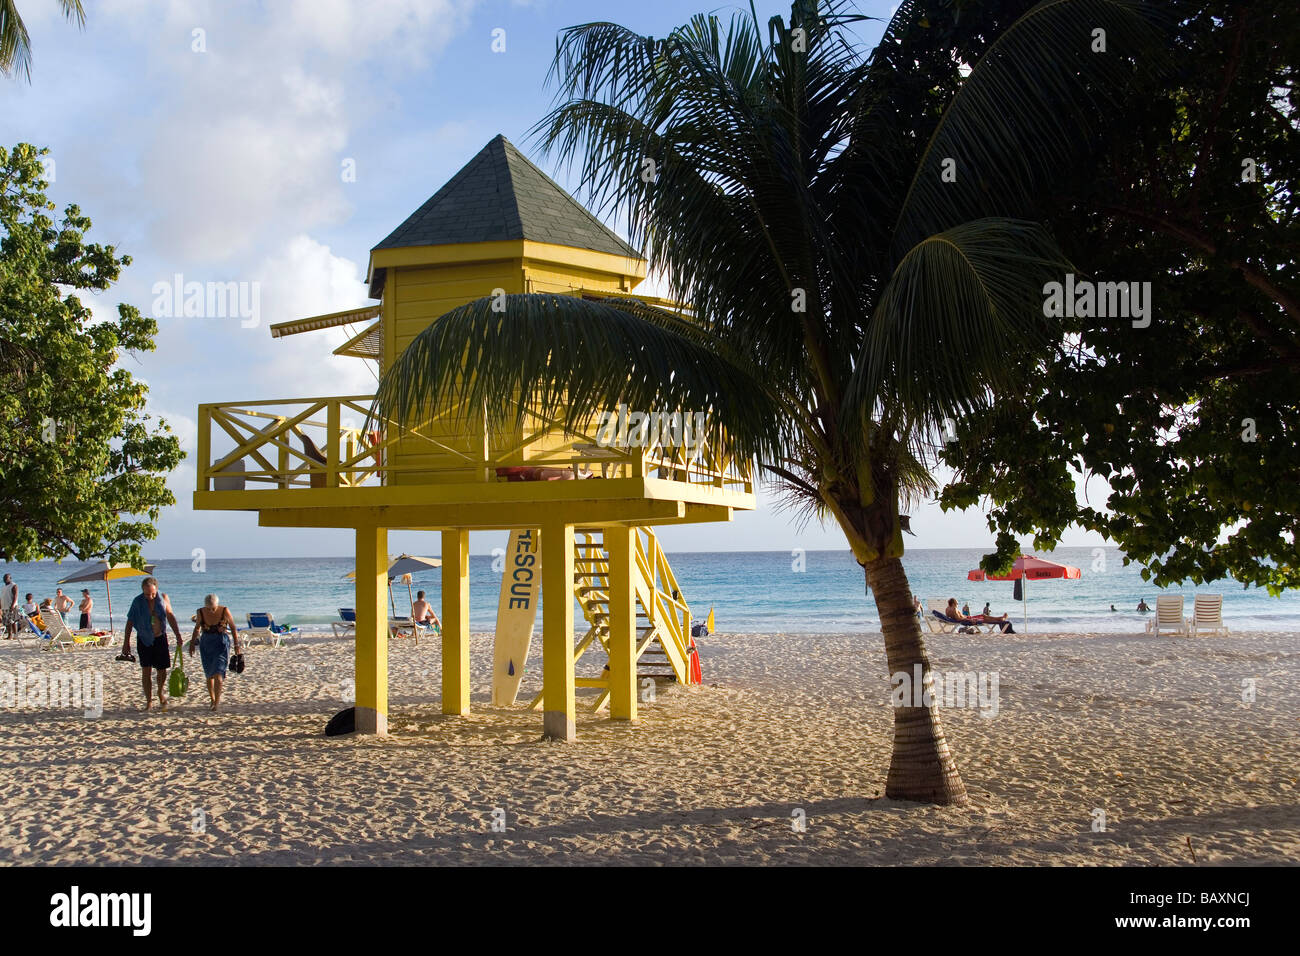 Watch tower at Accra Beach, Rockley, Barbados, Caribbean - Stock Image